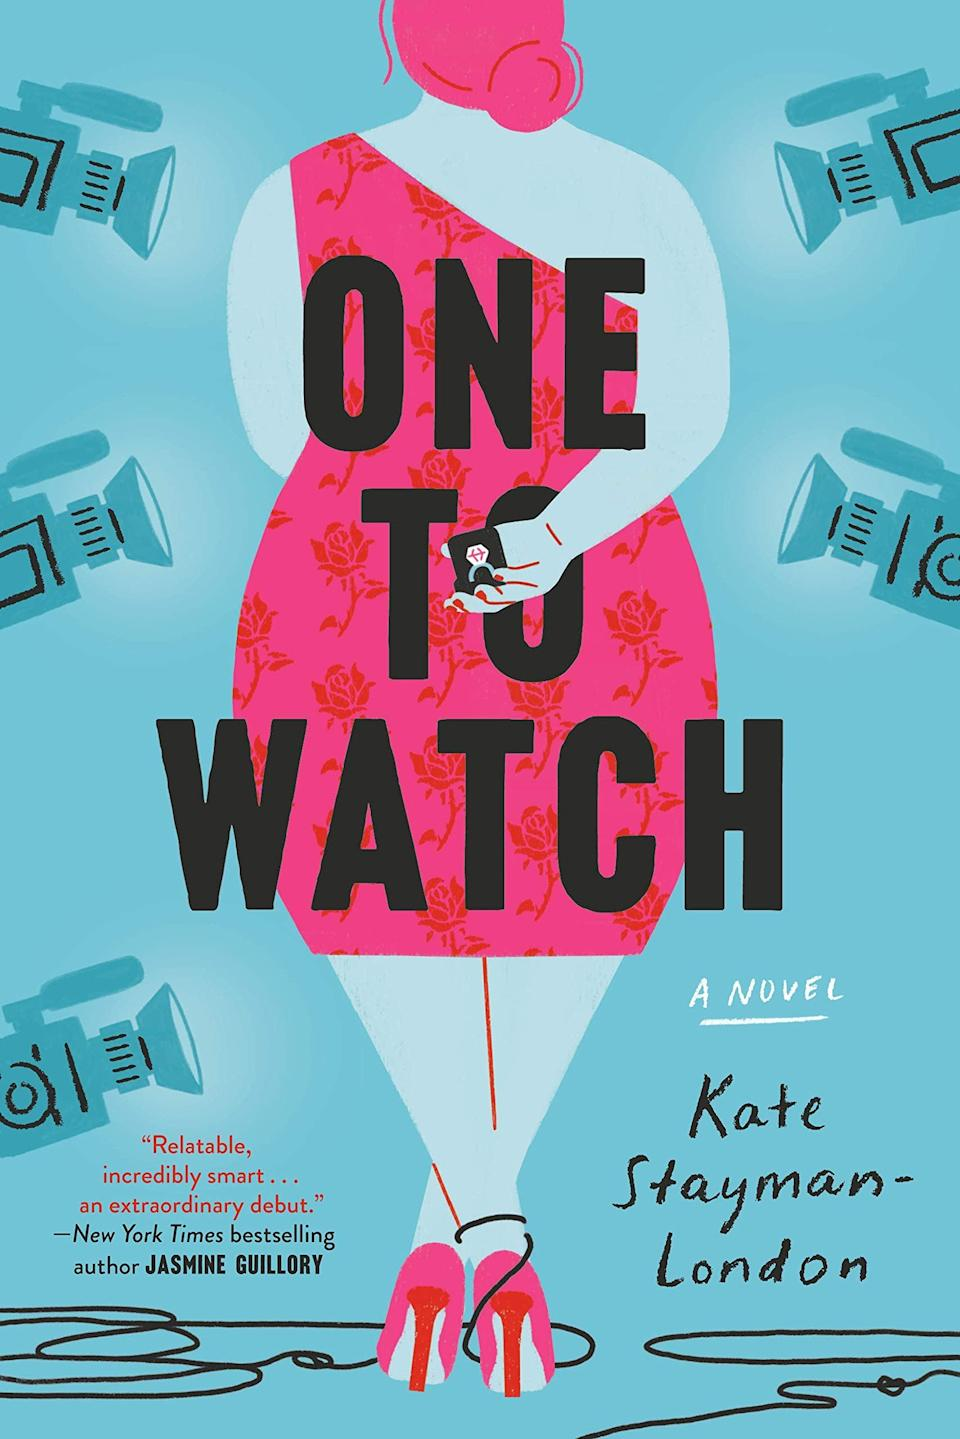 <p>If your friend is a big <strong>Bachelorette</strong> fan and hasn't read this book yet, remedy that situation immediately. Bea Schumacher is a curvy fashion blogger who lands an opportunity to be the star of a hit dating reality show in <span><strong>One to Watch</strong> by Kate Stayman-London</span> ($11). She's convinced she won't find love on TV, but things take a turn when she meets, and actually starts falling for, her suitors.</p> <p>This is basically like watching a (very dramatic) season of the <strong>Bachelorette</strong> unfold, except in book format. It's a fun and fresh premise, with multiple love interests to root for, a cool (fictional) look into the production side, and a lovable leading lady who also happens to be a curvy fashion blogger.</p>